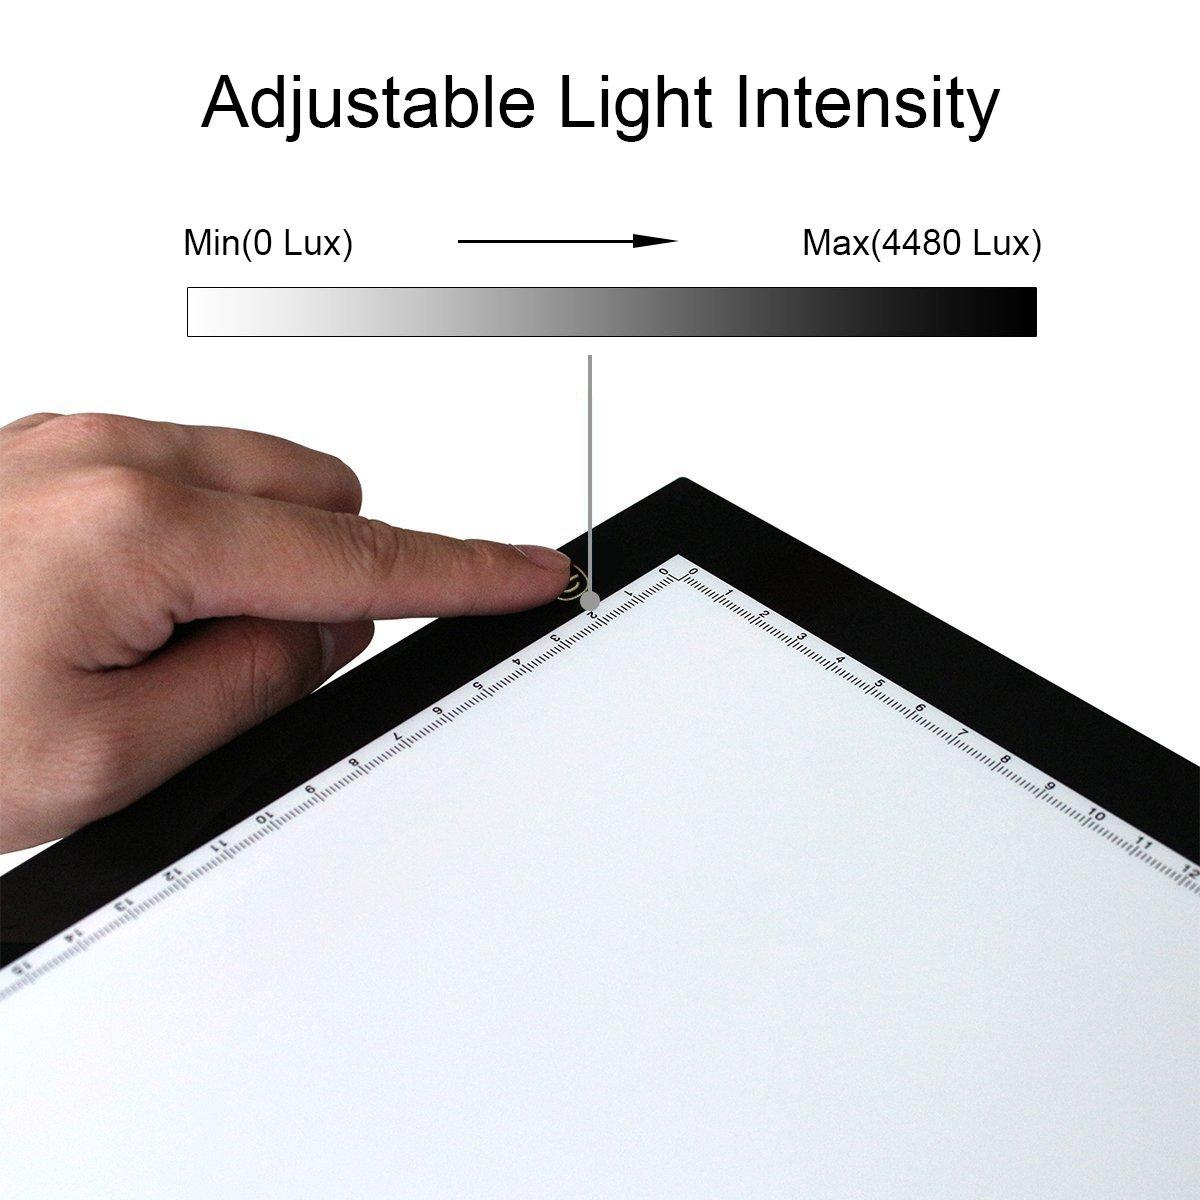 Huion A4 Light Box Tracing Board, L4S Ultra-thin Portable Drafting LED Table Art Light Pad for Tattoo Drawing Animation Designing Stencilling X-ray Viewing With Holder (Lighter and Thinner)